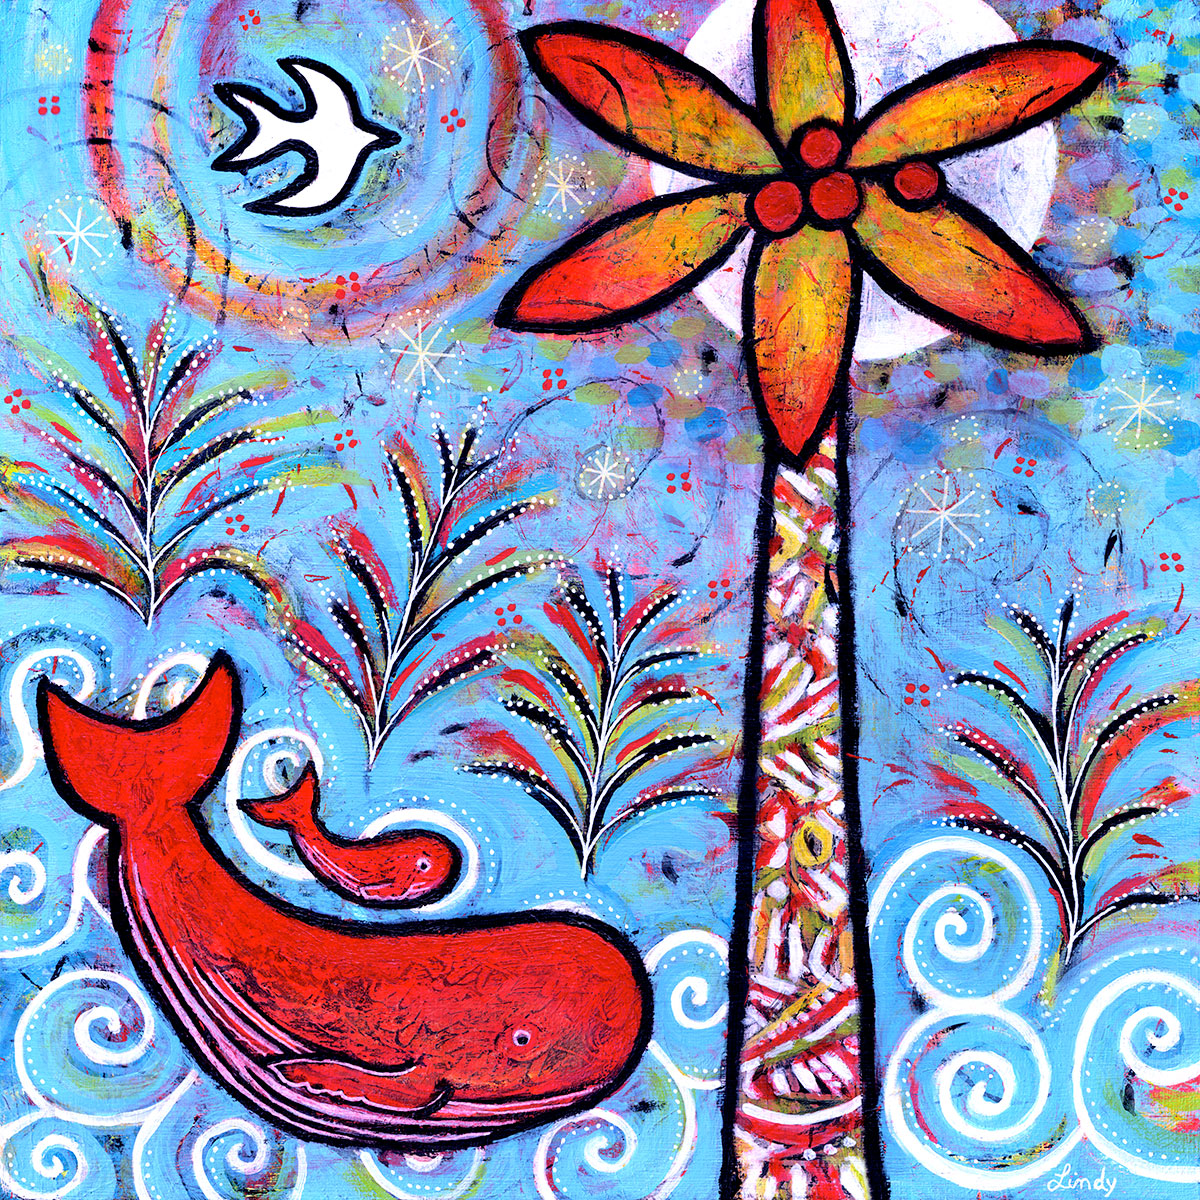 colorful whale painting by Lindy gaskill